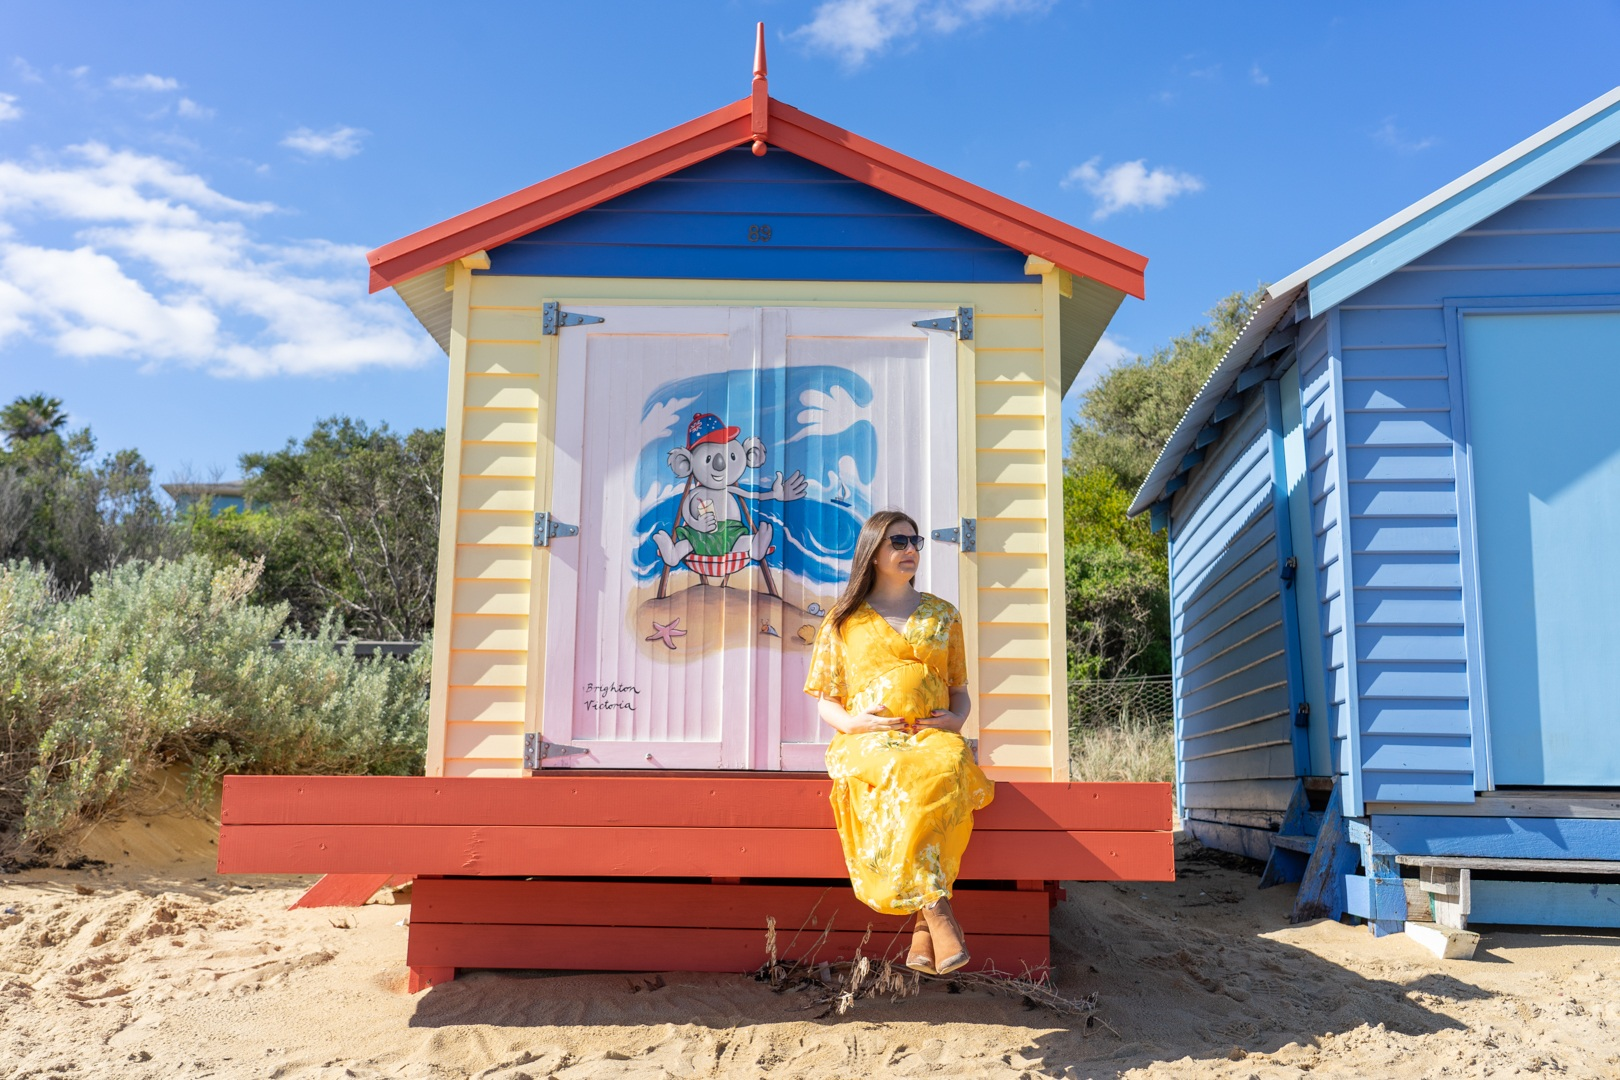 Me (Jess) sitting in front of a Blinky Bill designed Brighton Beach Box in Melbourne, Victoria, holding my pregnant belly.